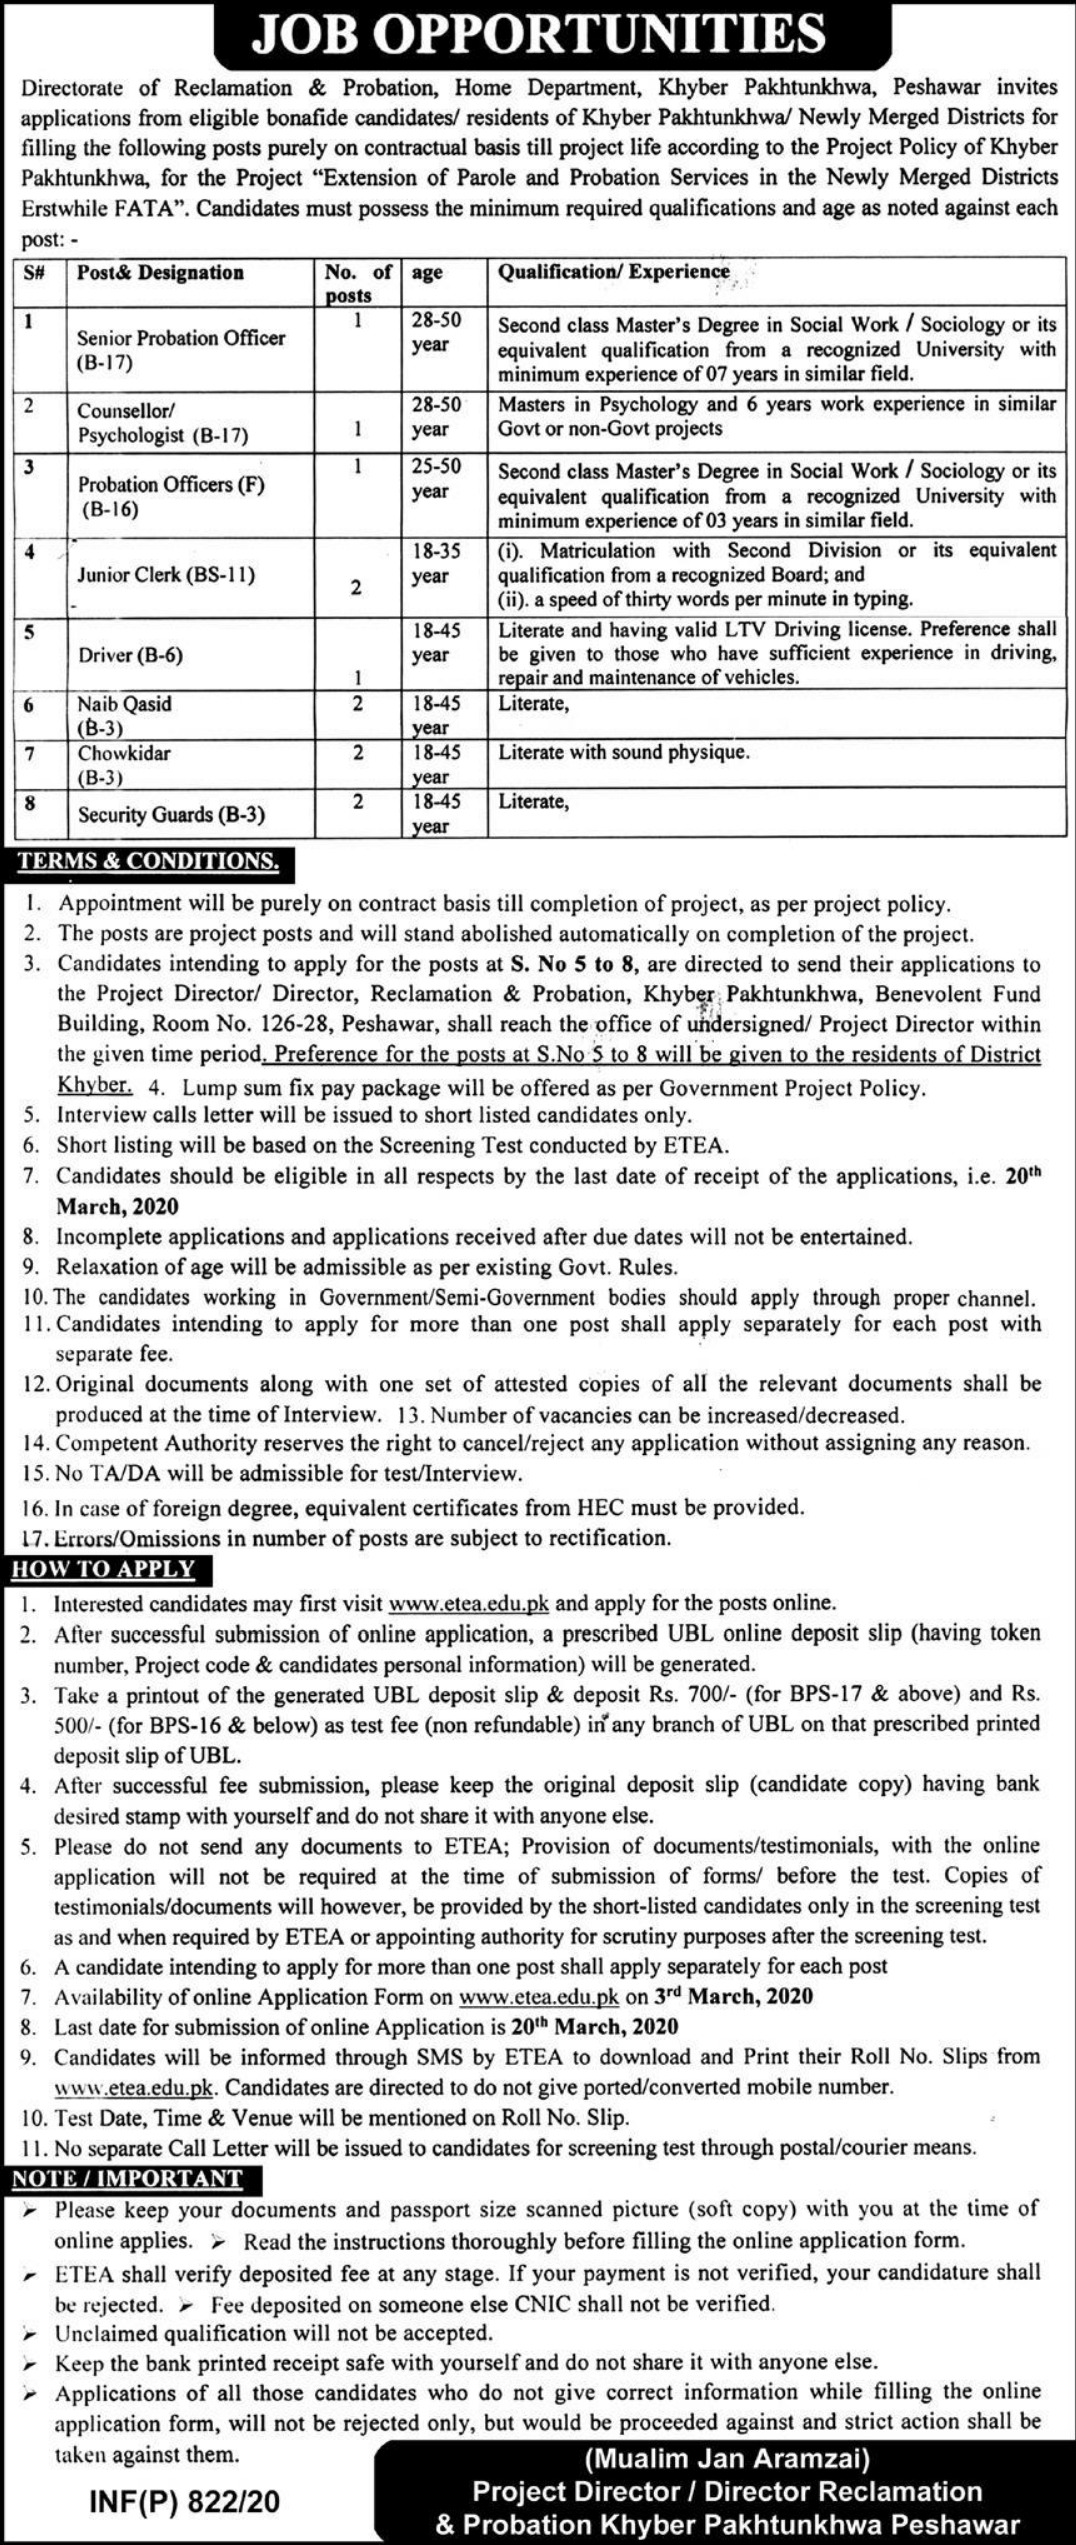 Home Department Khyber Pakhtunkhwa Jobs 2020 Peshawar